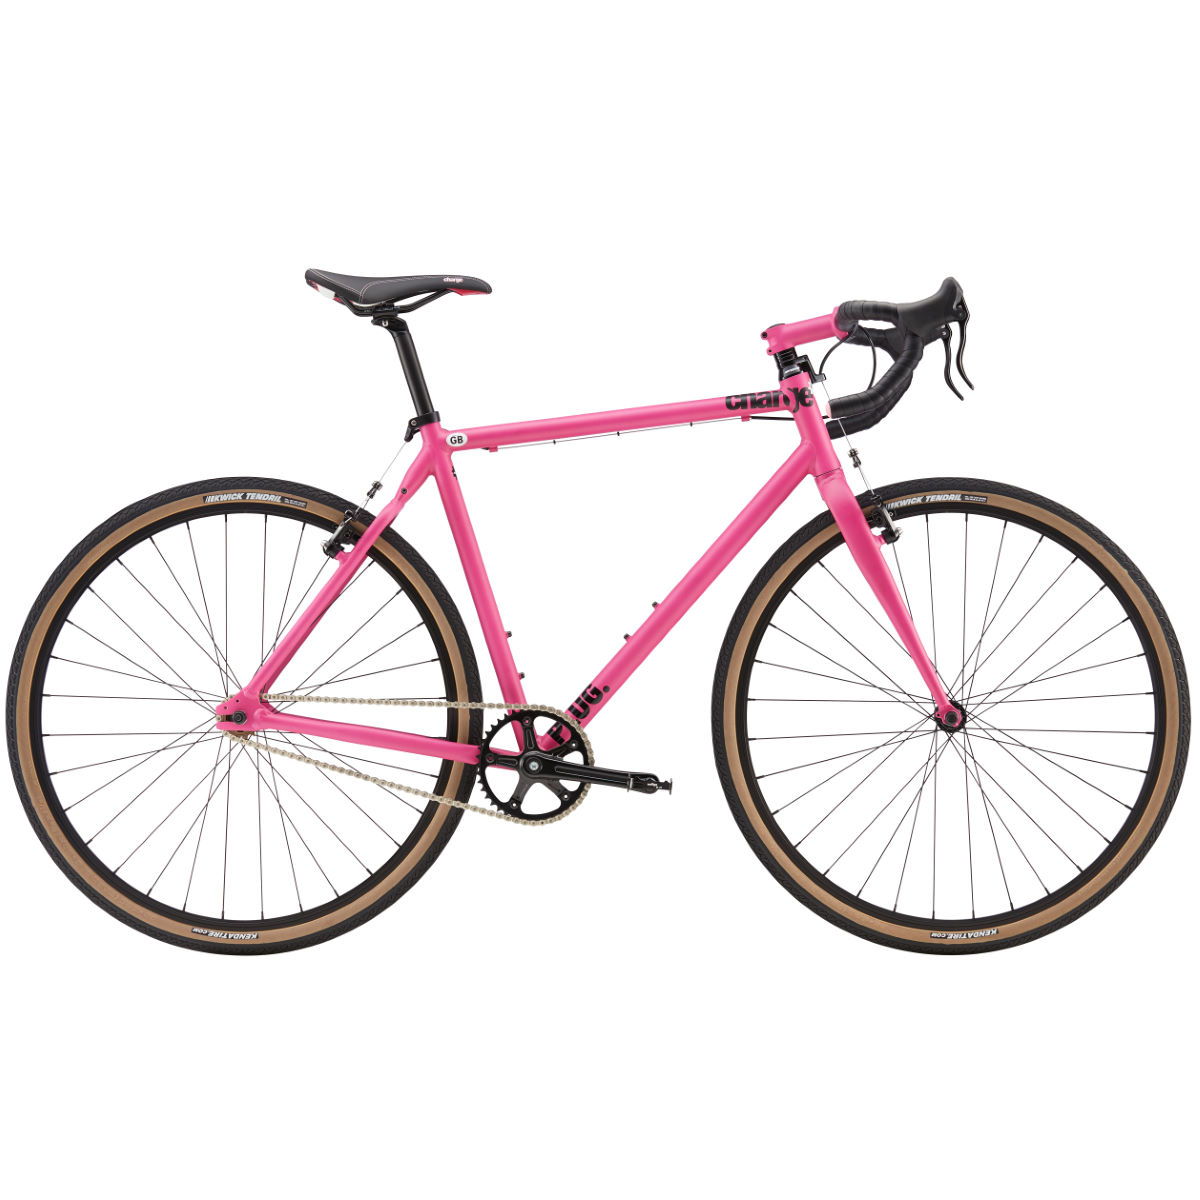 Vélo single-speed Charge Plug 1 (2016) - M Rose Single speed